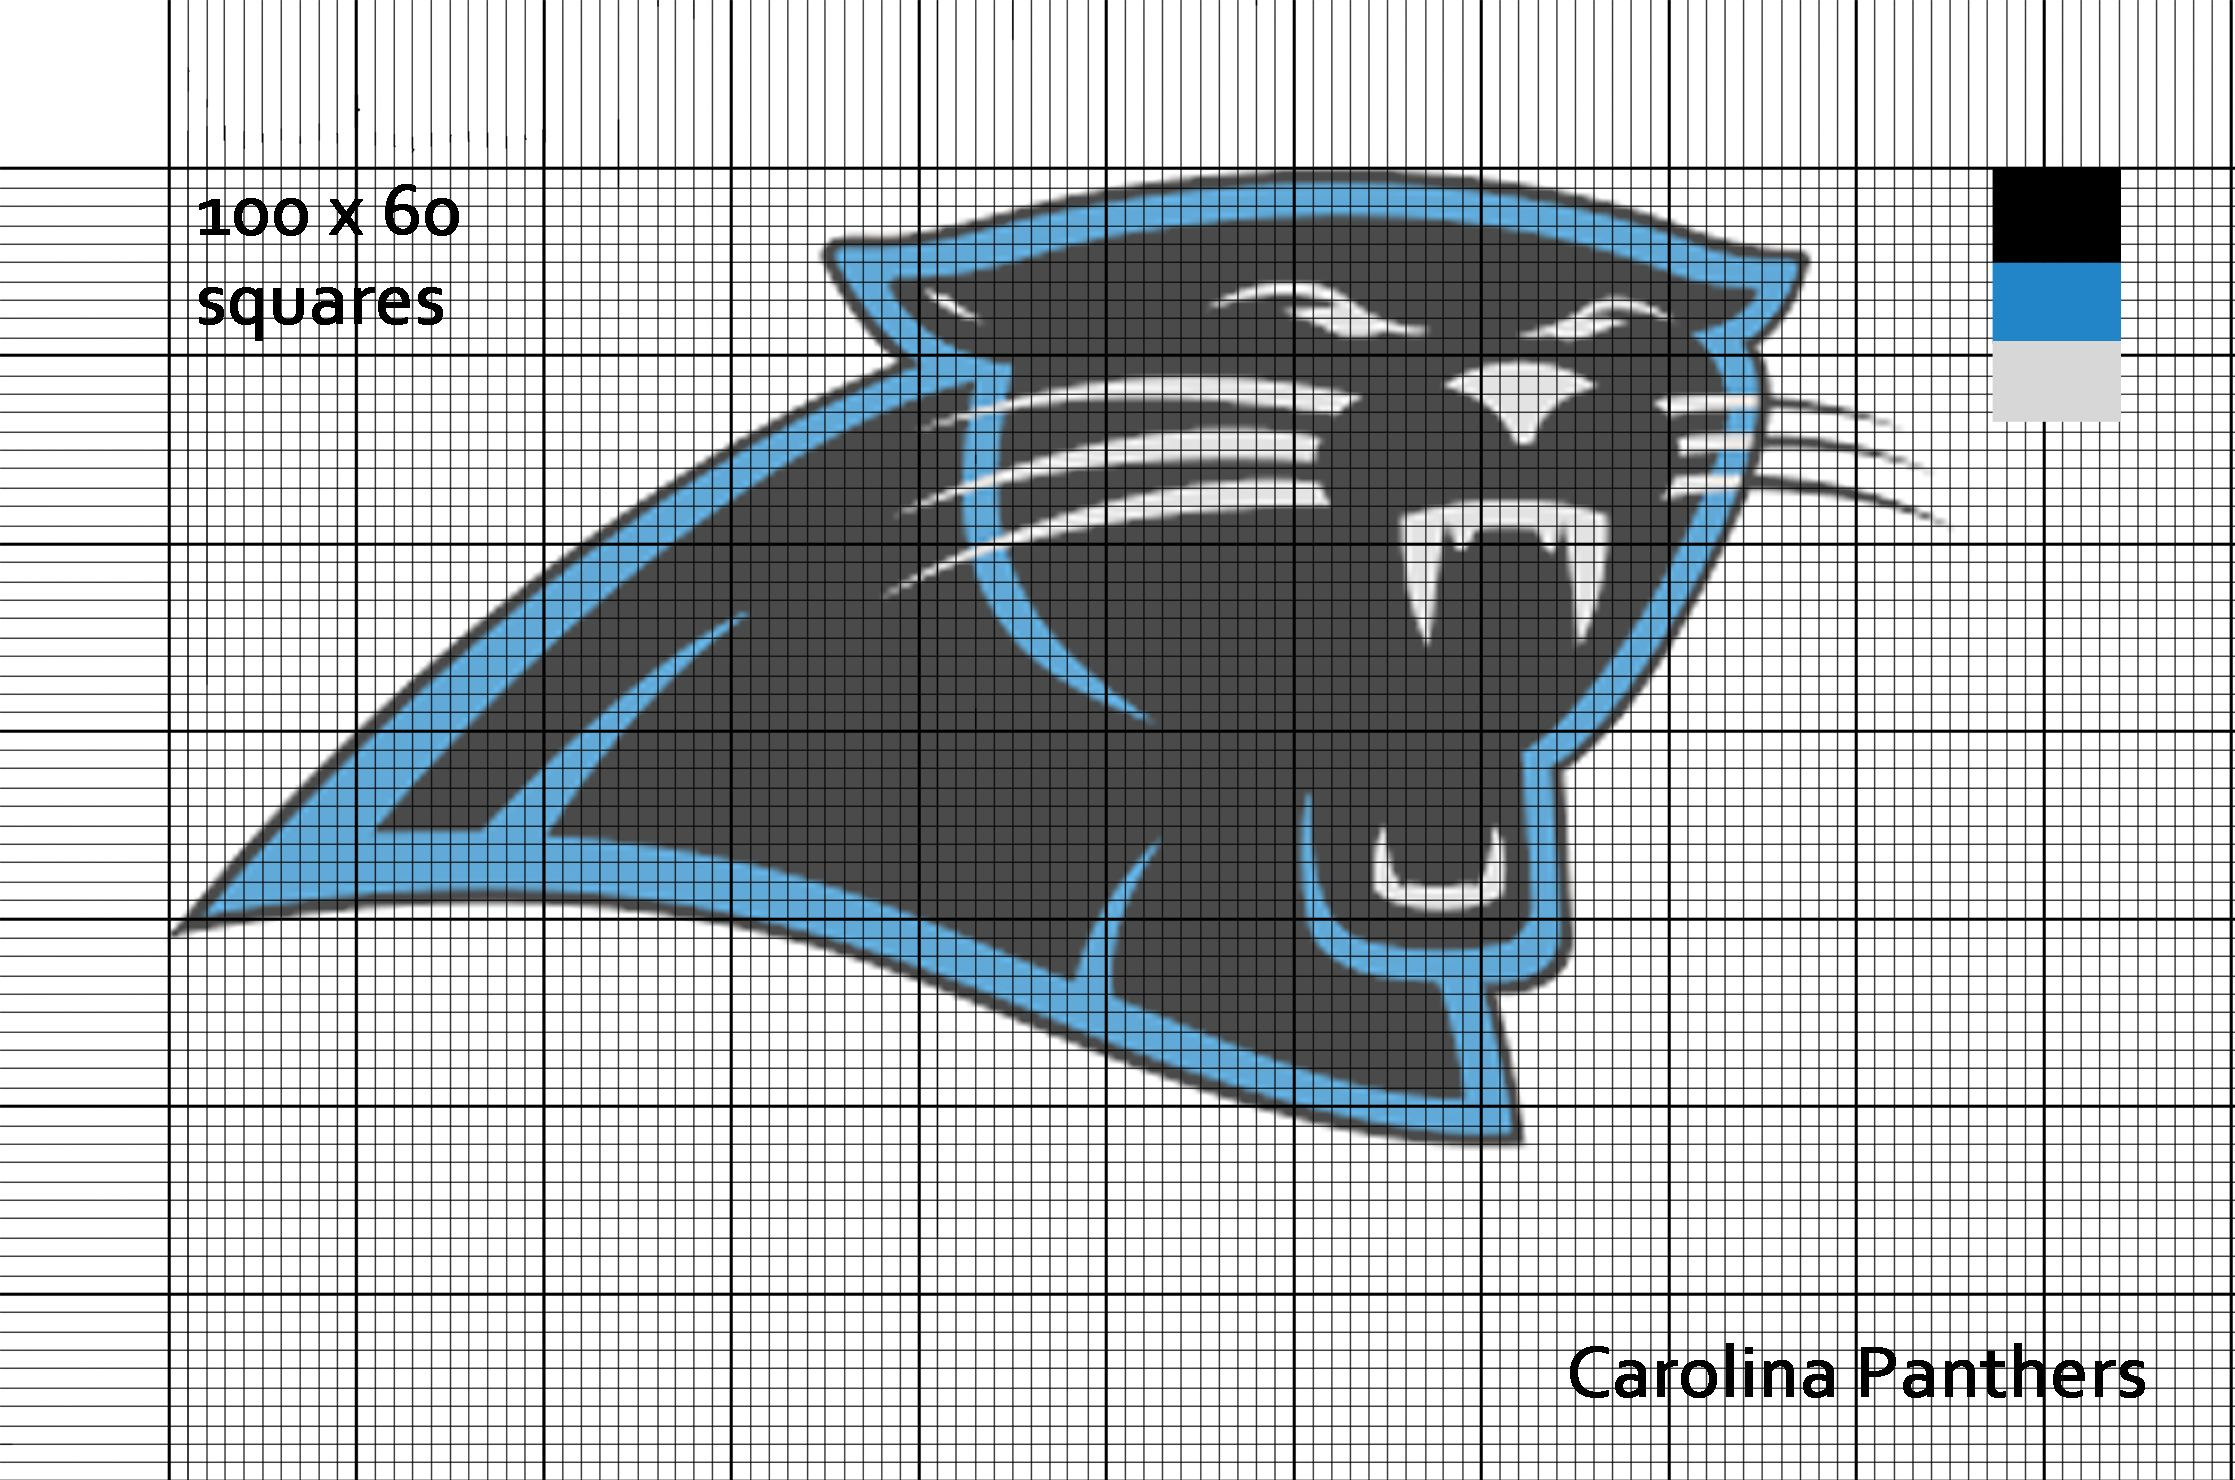 Carolina Panthers Nfl Logo Cross Stitch Pattern Cross